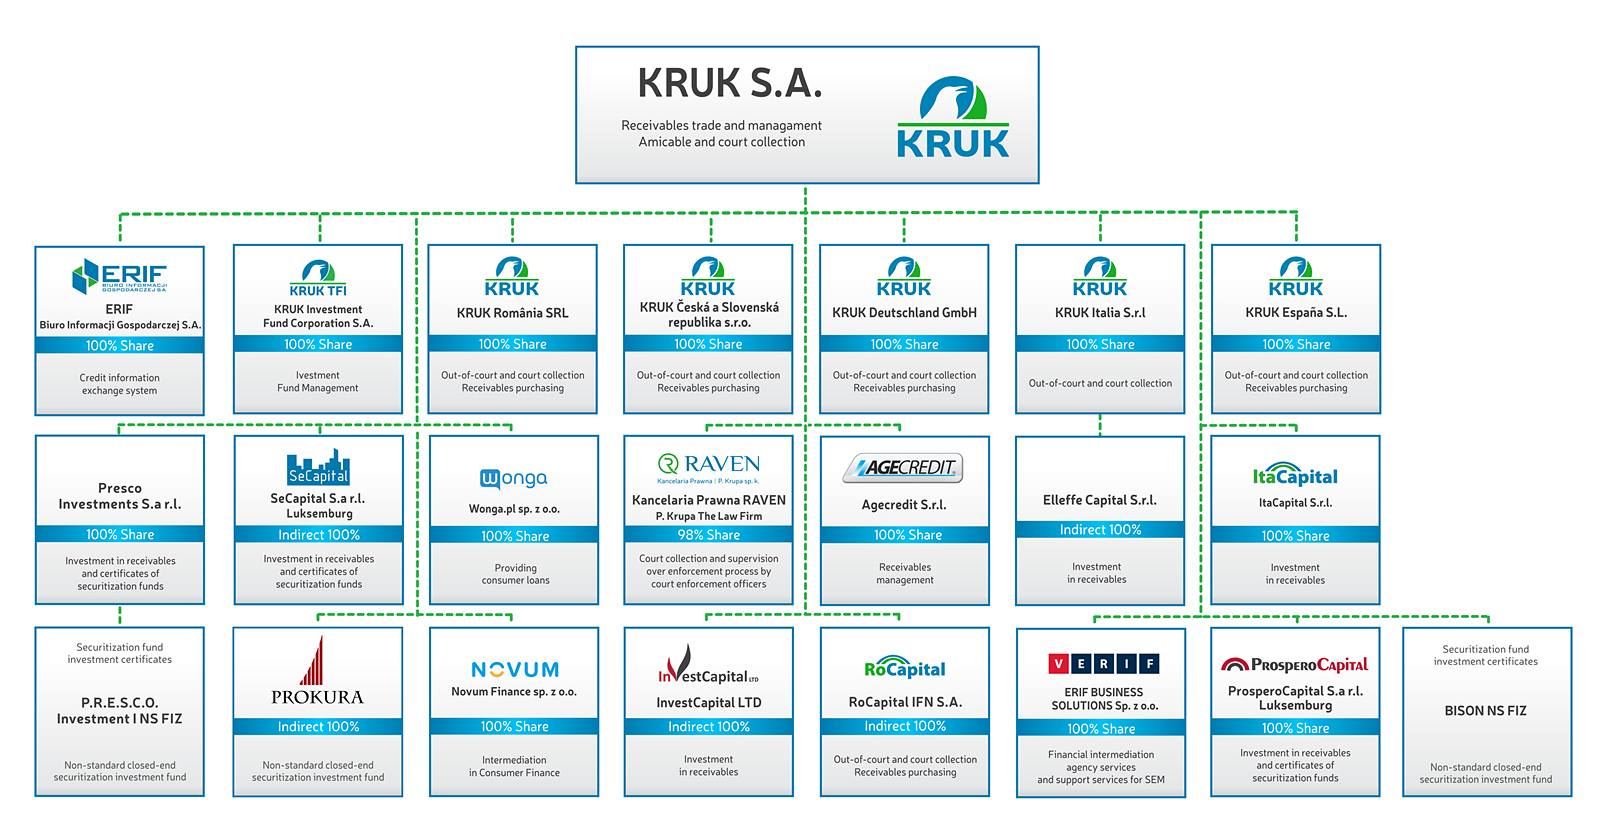 KRUK Group Structure